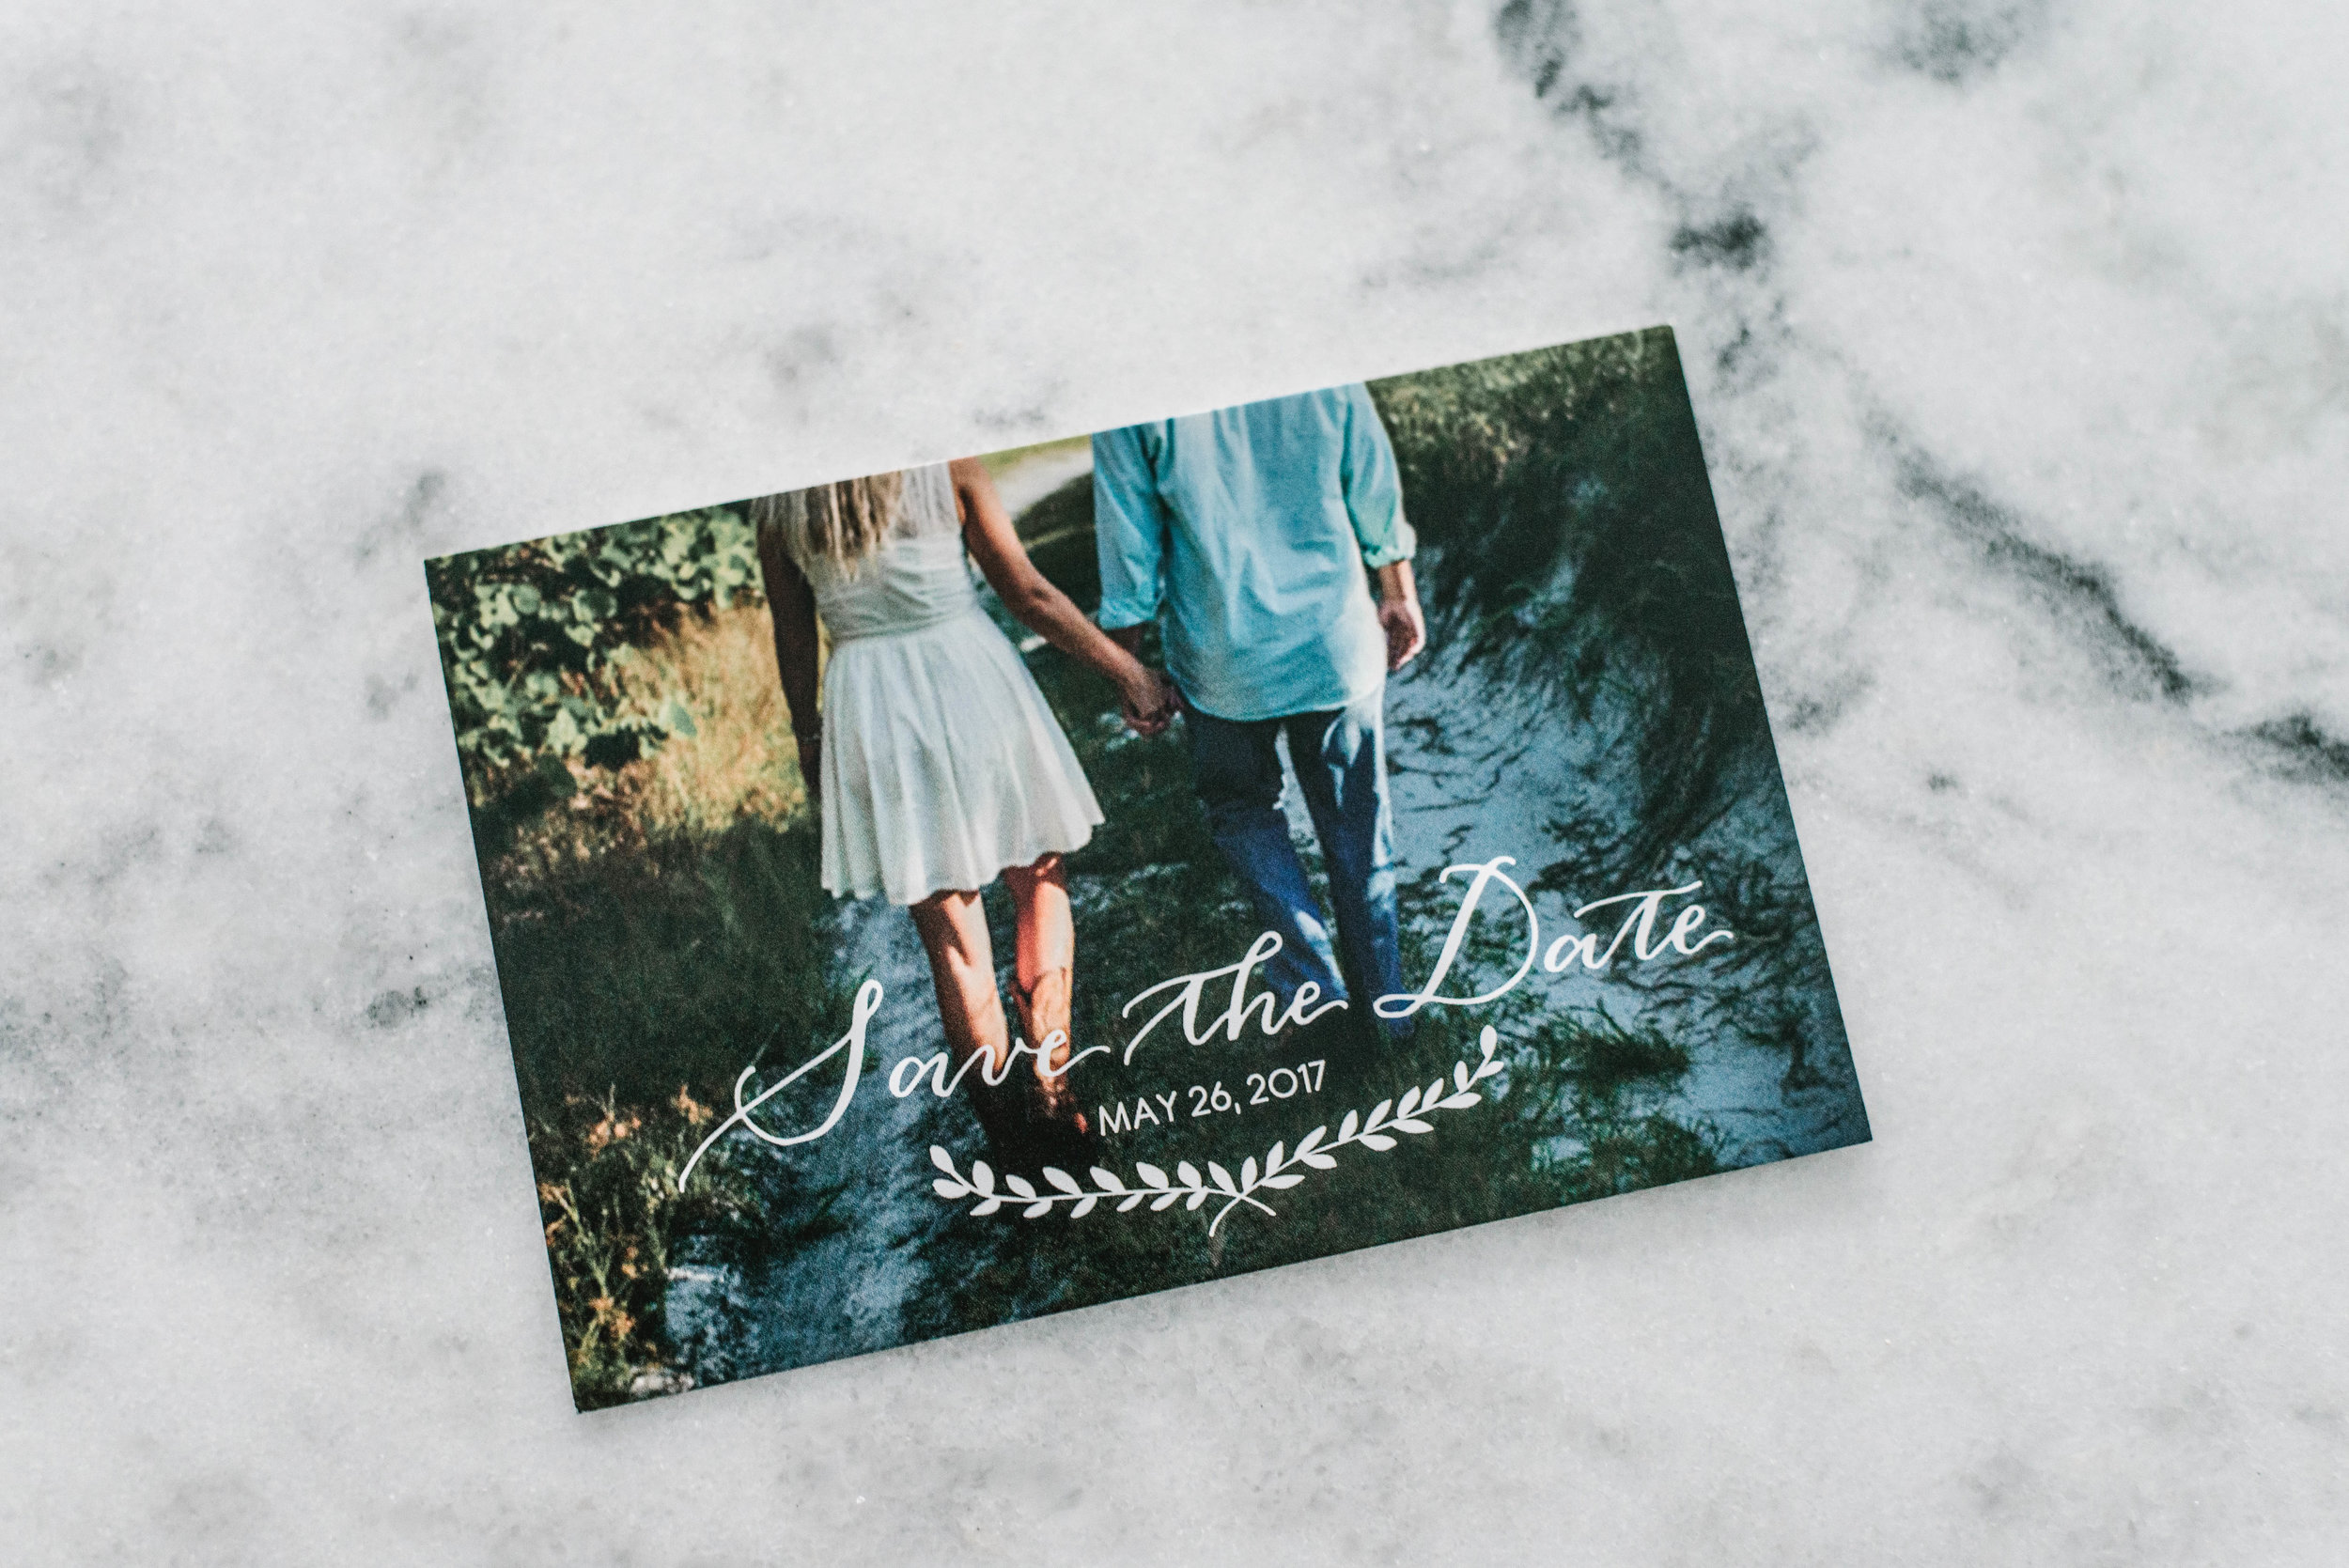 wedding design by laney save the date dates photo picture couple engaged fiance love beautiful postcard calligraphy calligrapher.jpg